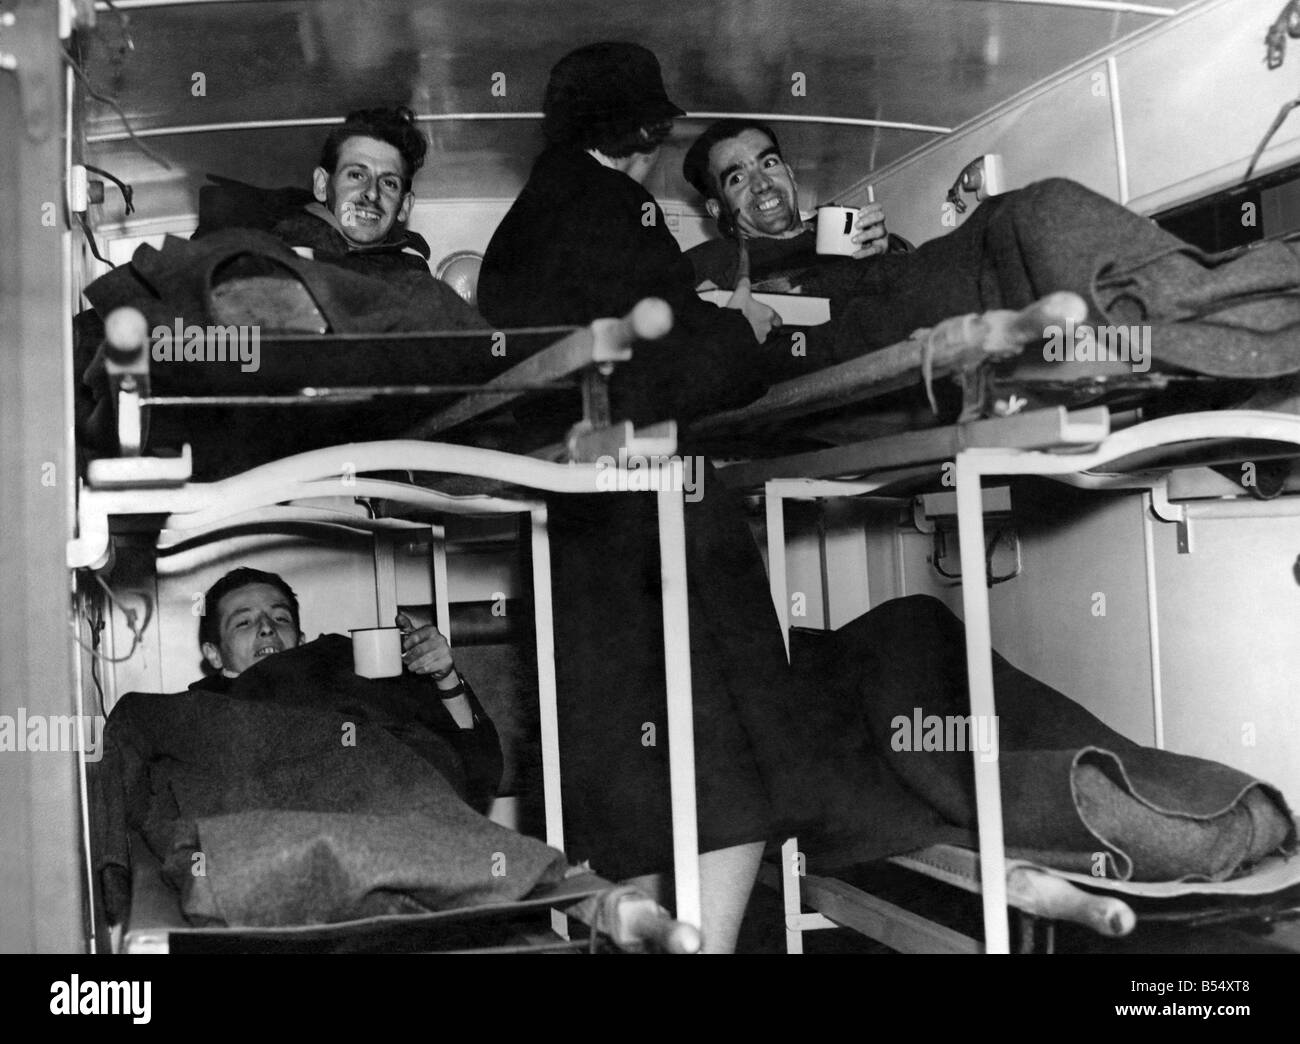 World War II Wounded: Wounded tommies from the African battlefront, all smiles on arrival in London and greeted - Stock Image